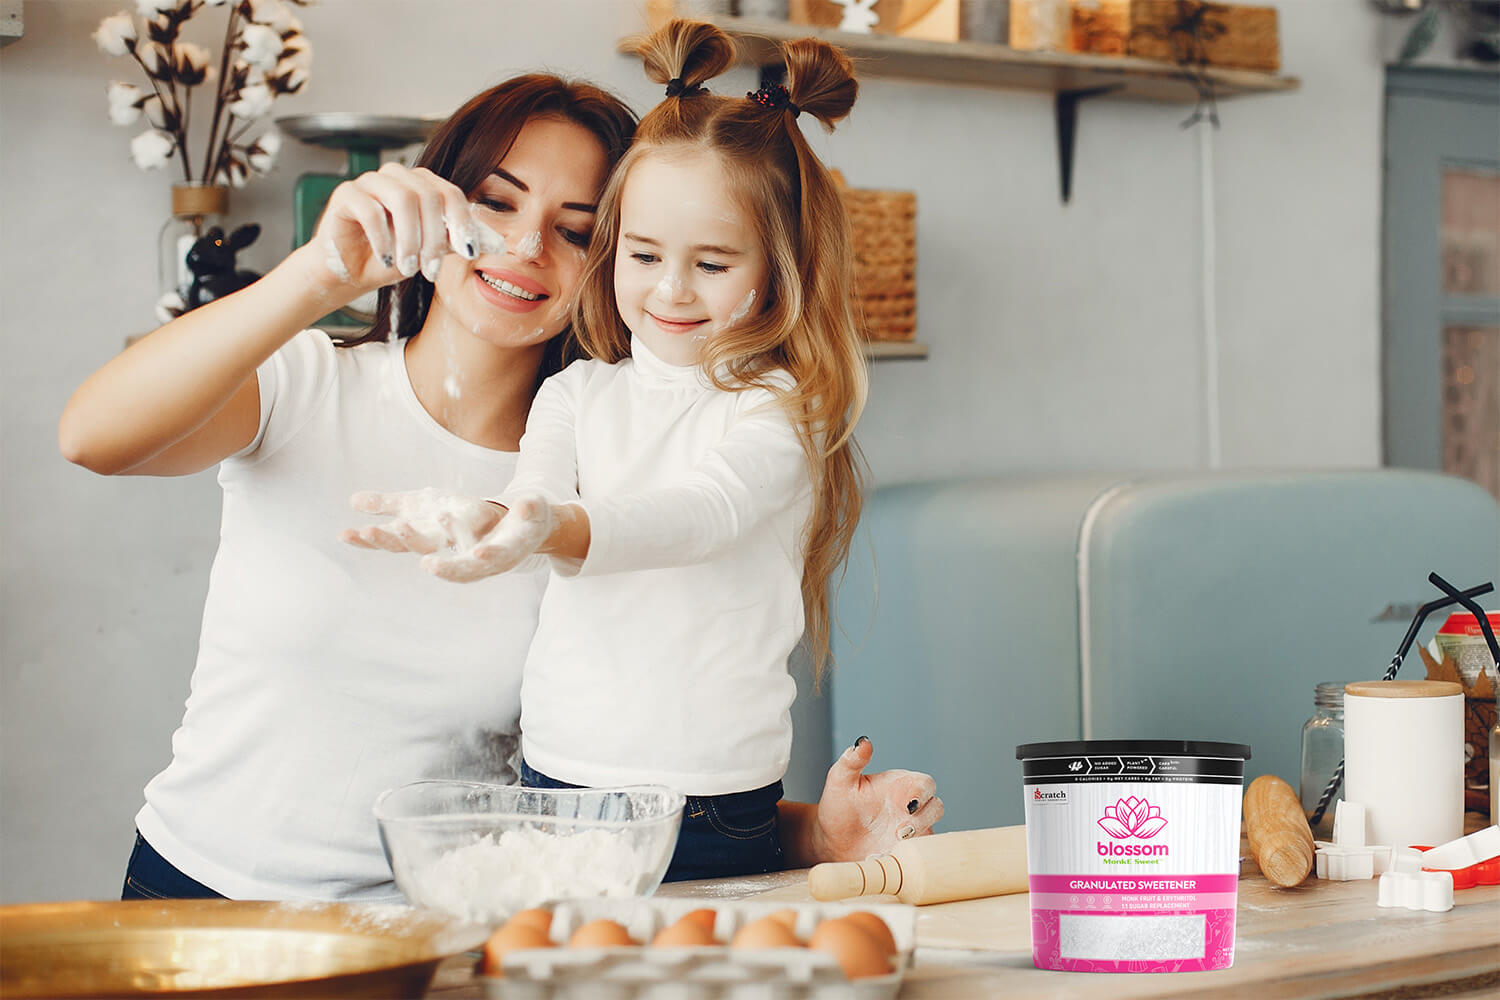 Blossom All Natural Sweeteners   Scratch Kitchen Co   Halo Healthy Tribes